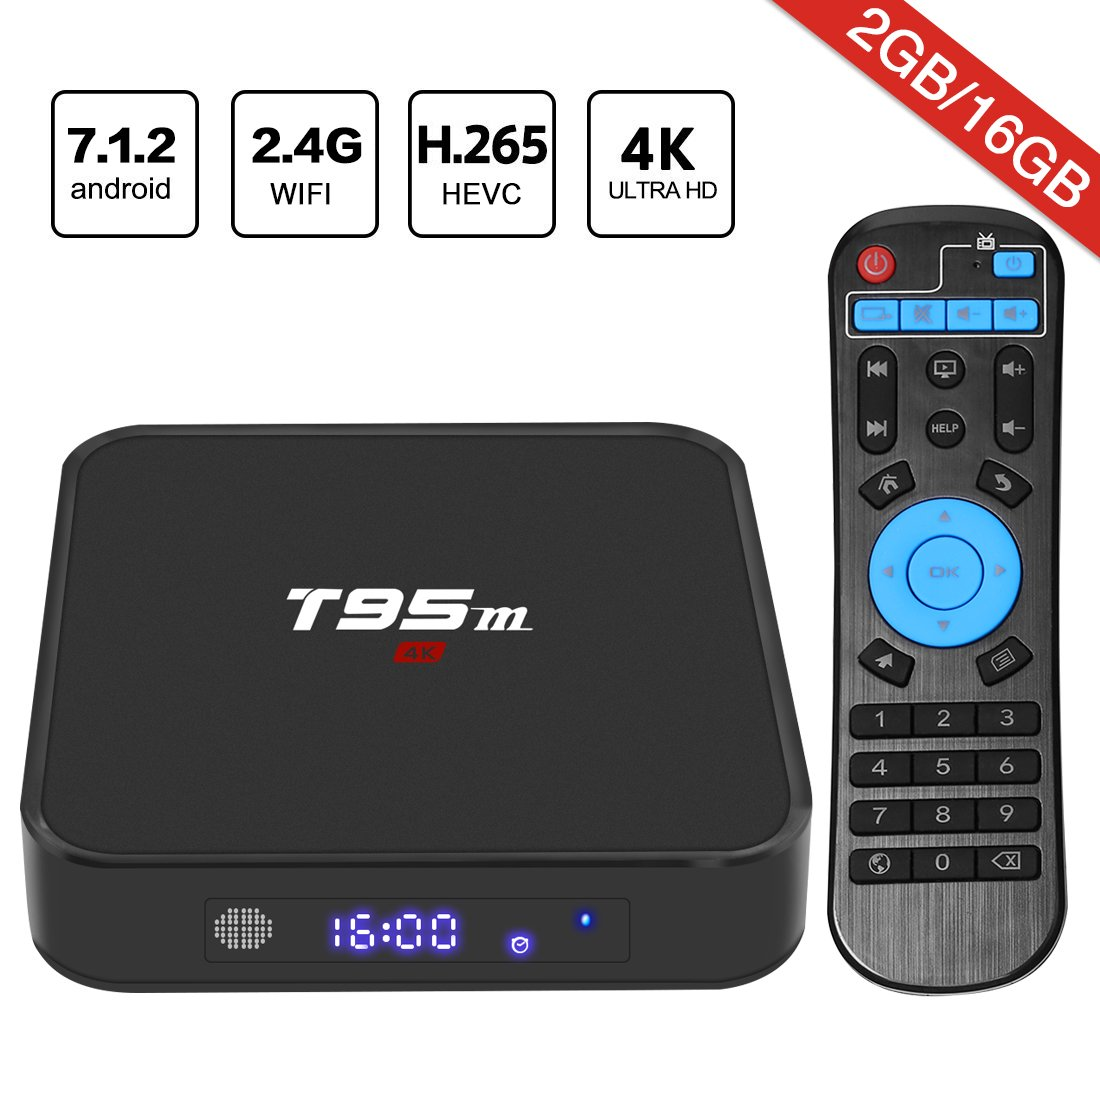 Android 7.1 TV Box, HAOSIHD T95M Smart Internet TV Box with 2GB RAM 16GB ROM, Amlogic S905X Quad Core 64 Bit WiFi Support 4K Full HD by HAOSIHD (Image #1)